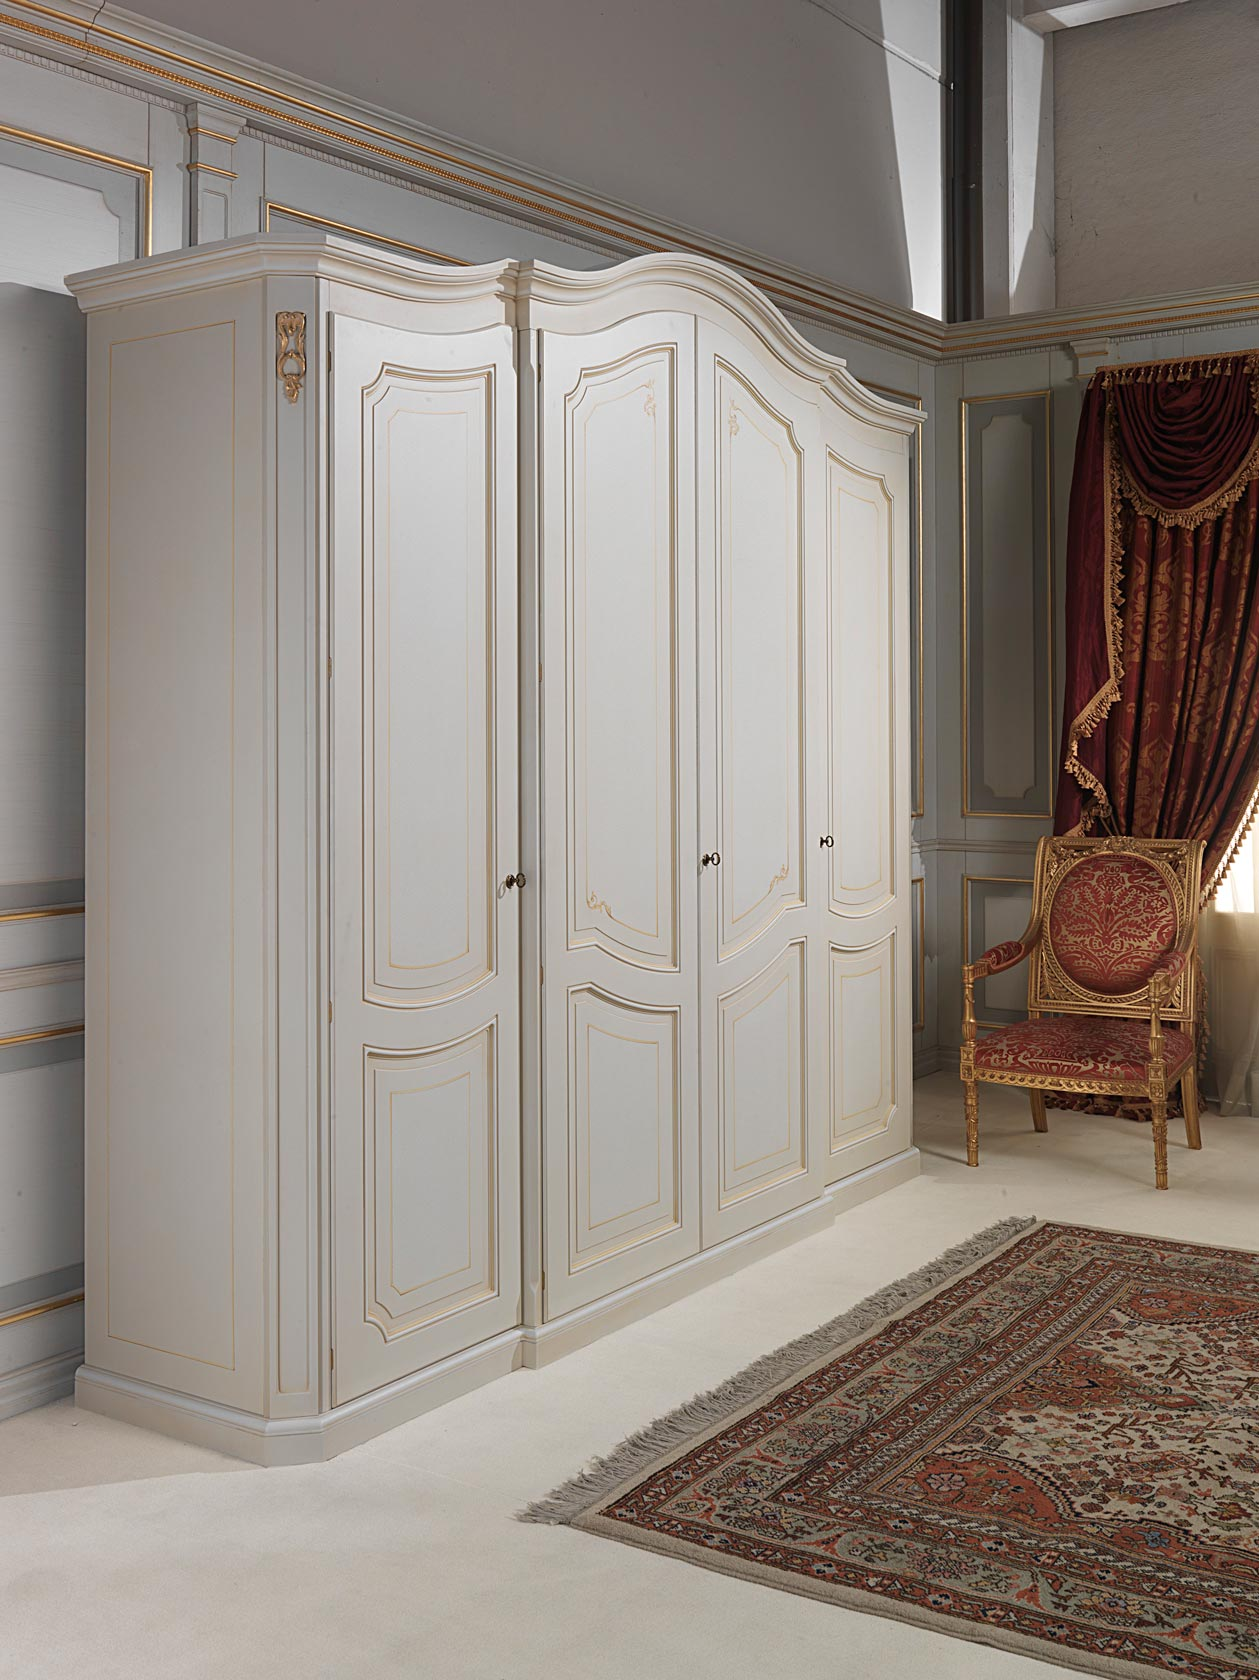 armoire classique xviiie si cle avec quatre portes ivoire. Black Bedroom Furniture Sets. Home Design Ideas